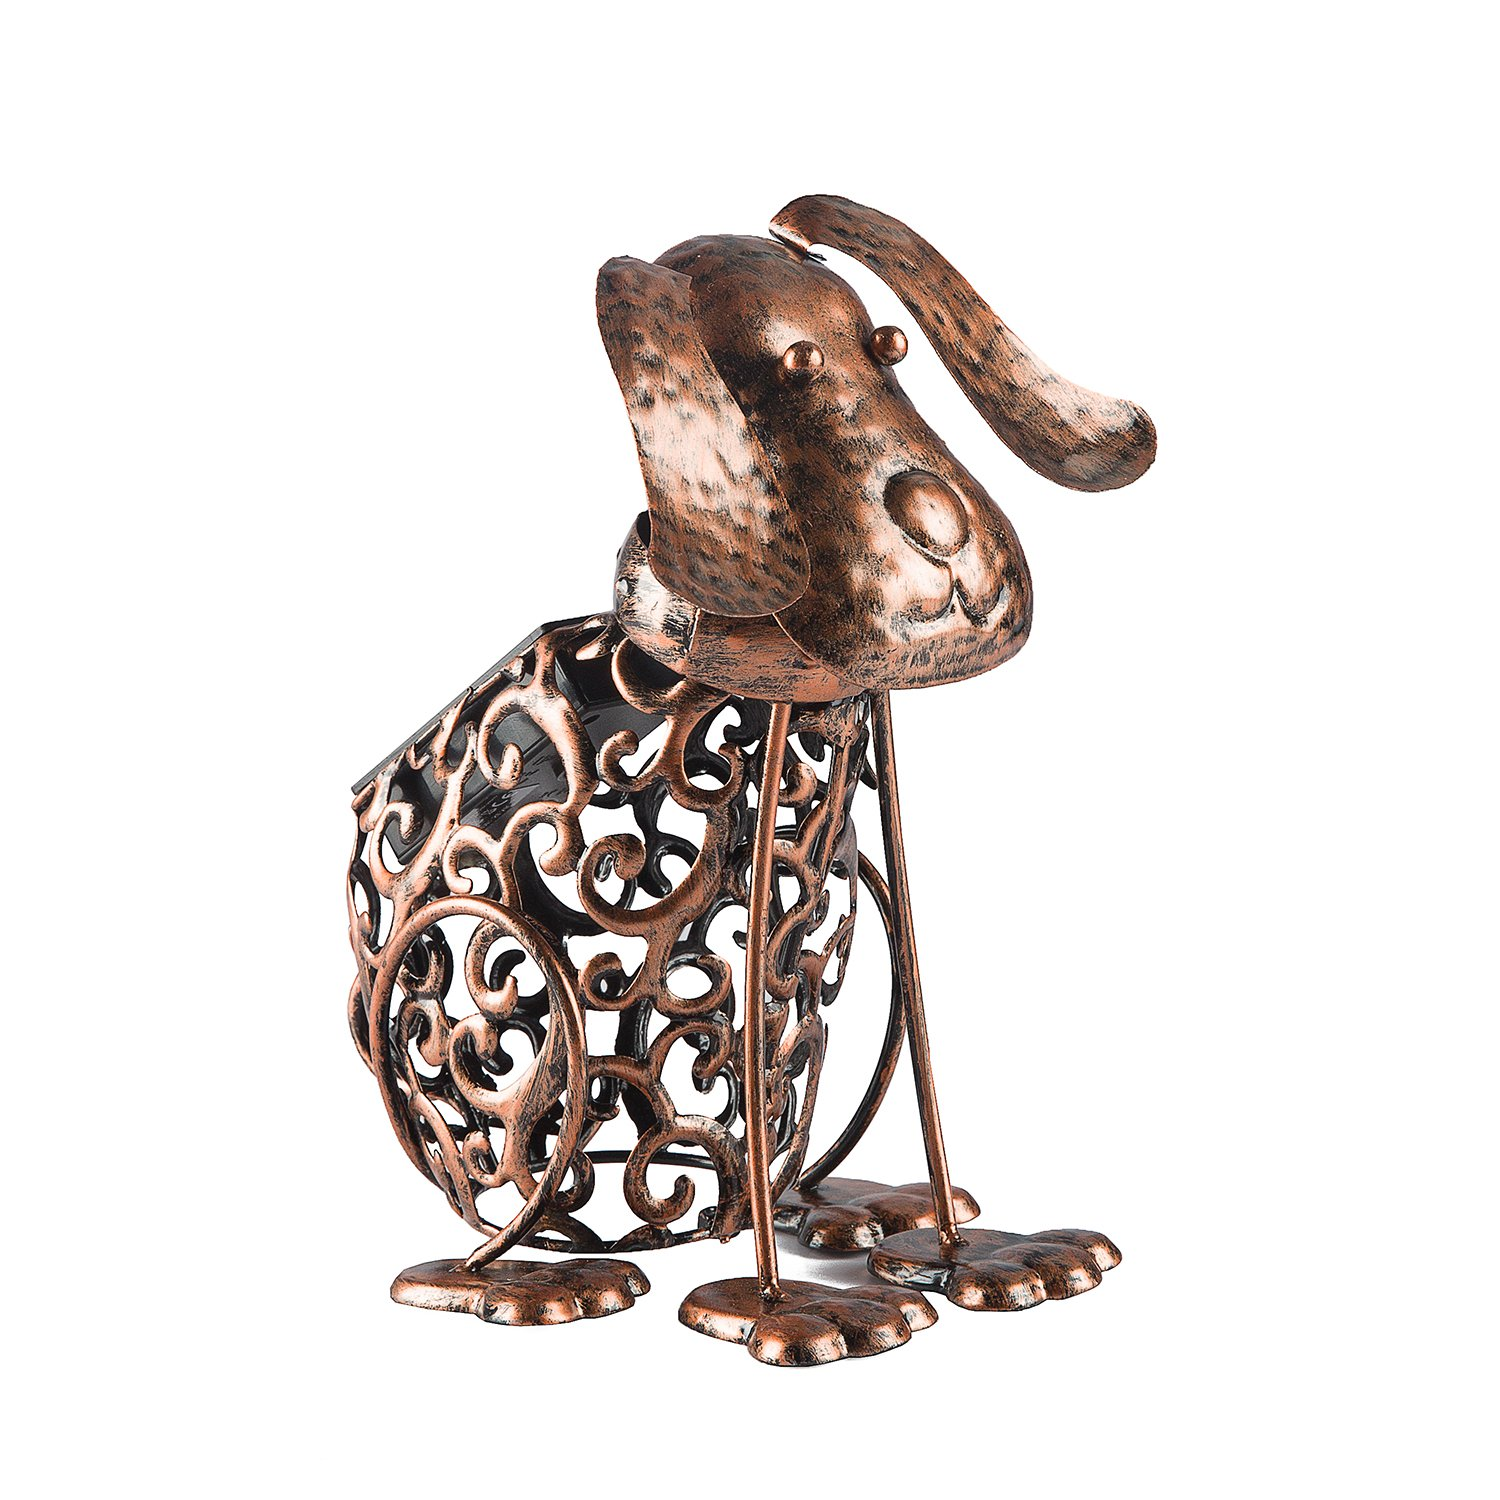 Solar Light Outdoor Decorative Metal Animal- BroGarden Cute Dog Non-Knockdown Figurine Decor